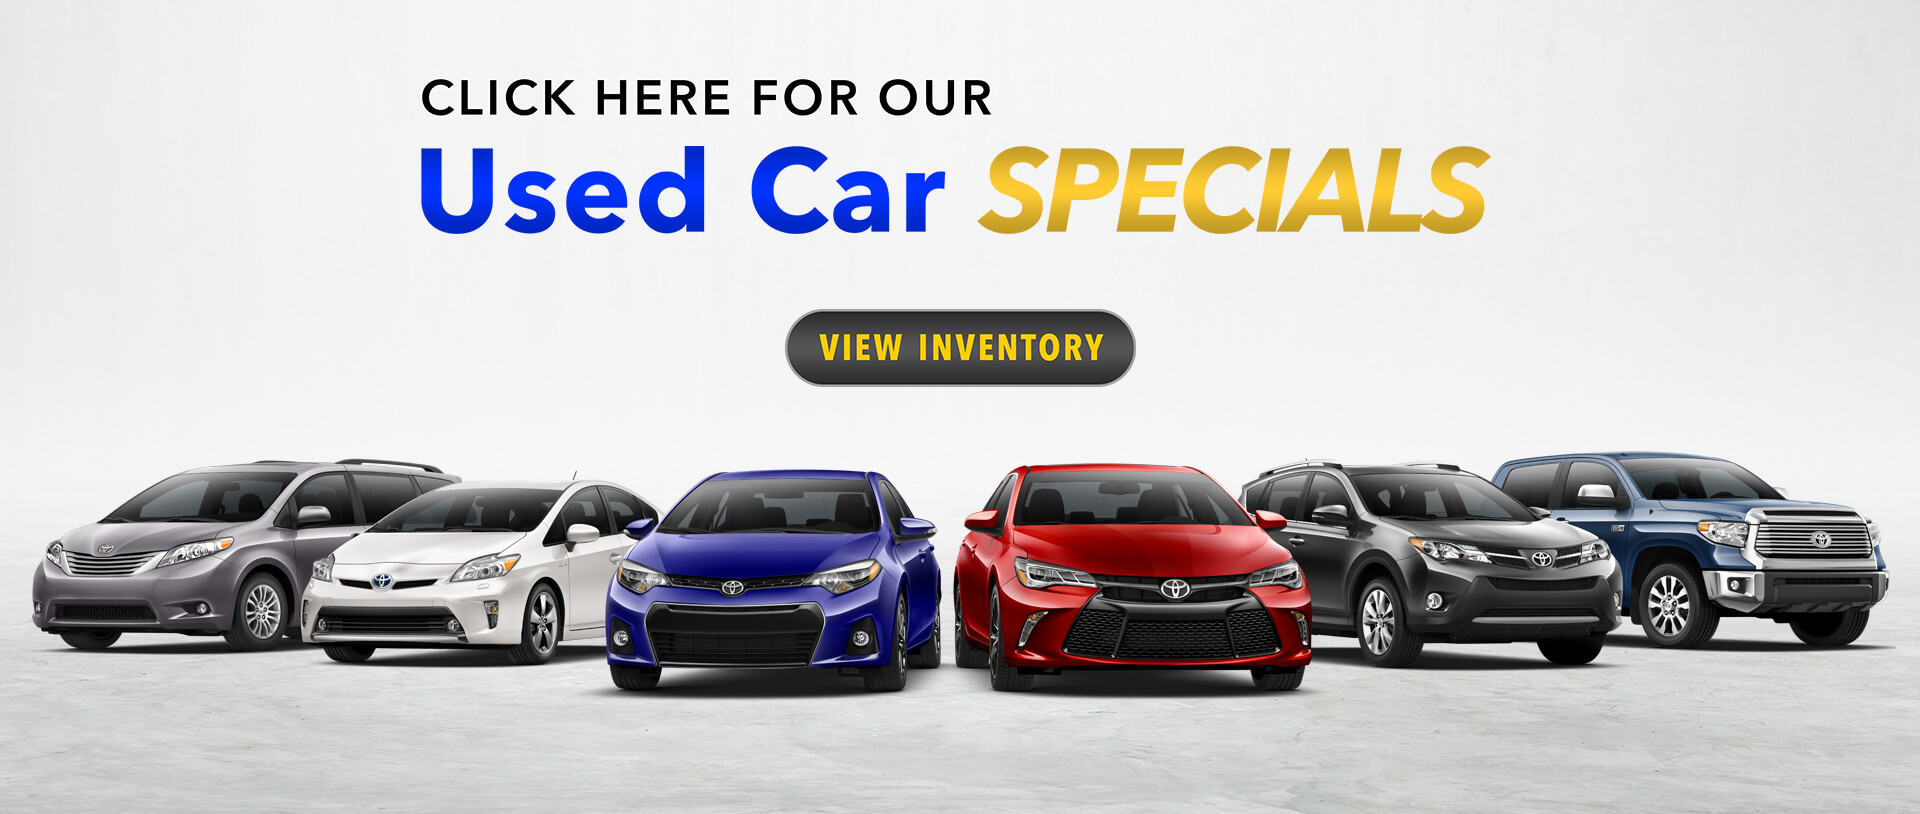 Toyota dealer serving costa mesa irvine santa ana newport beach